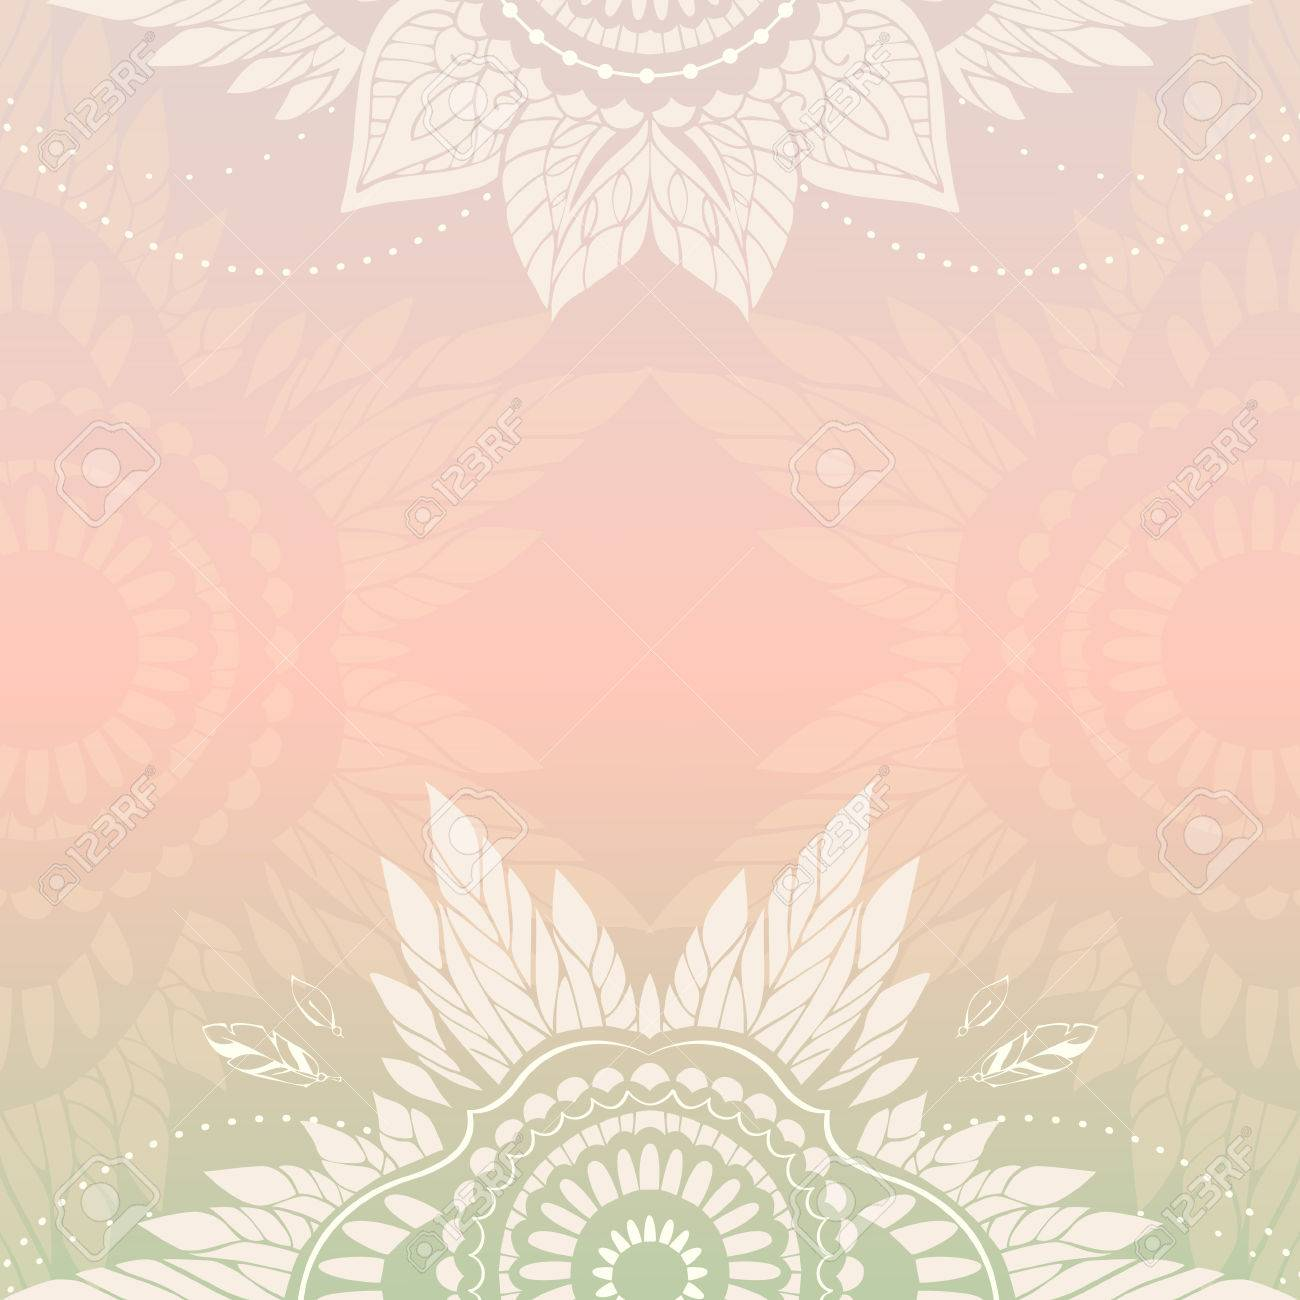 romantic vector templates in boho style can be used as invitations